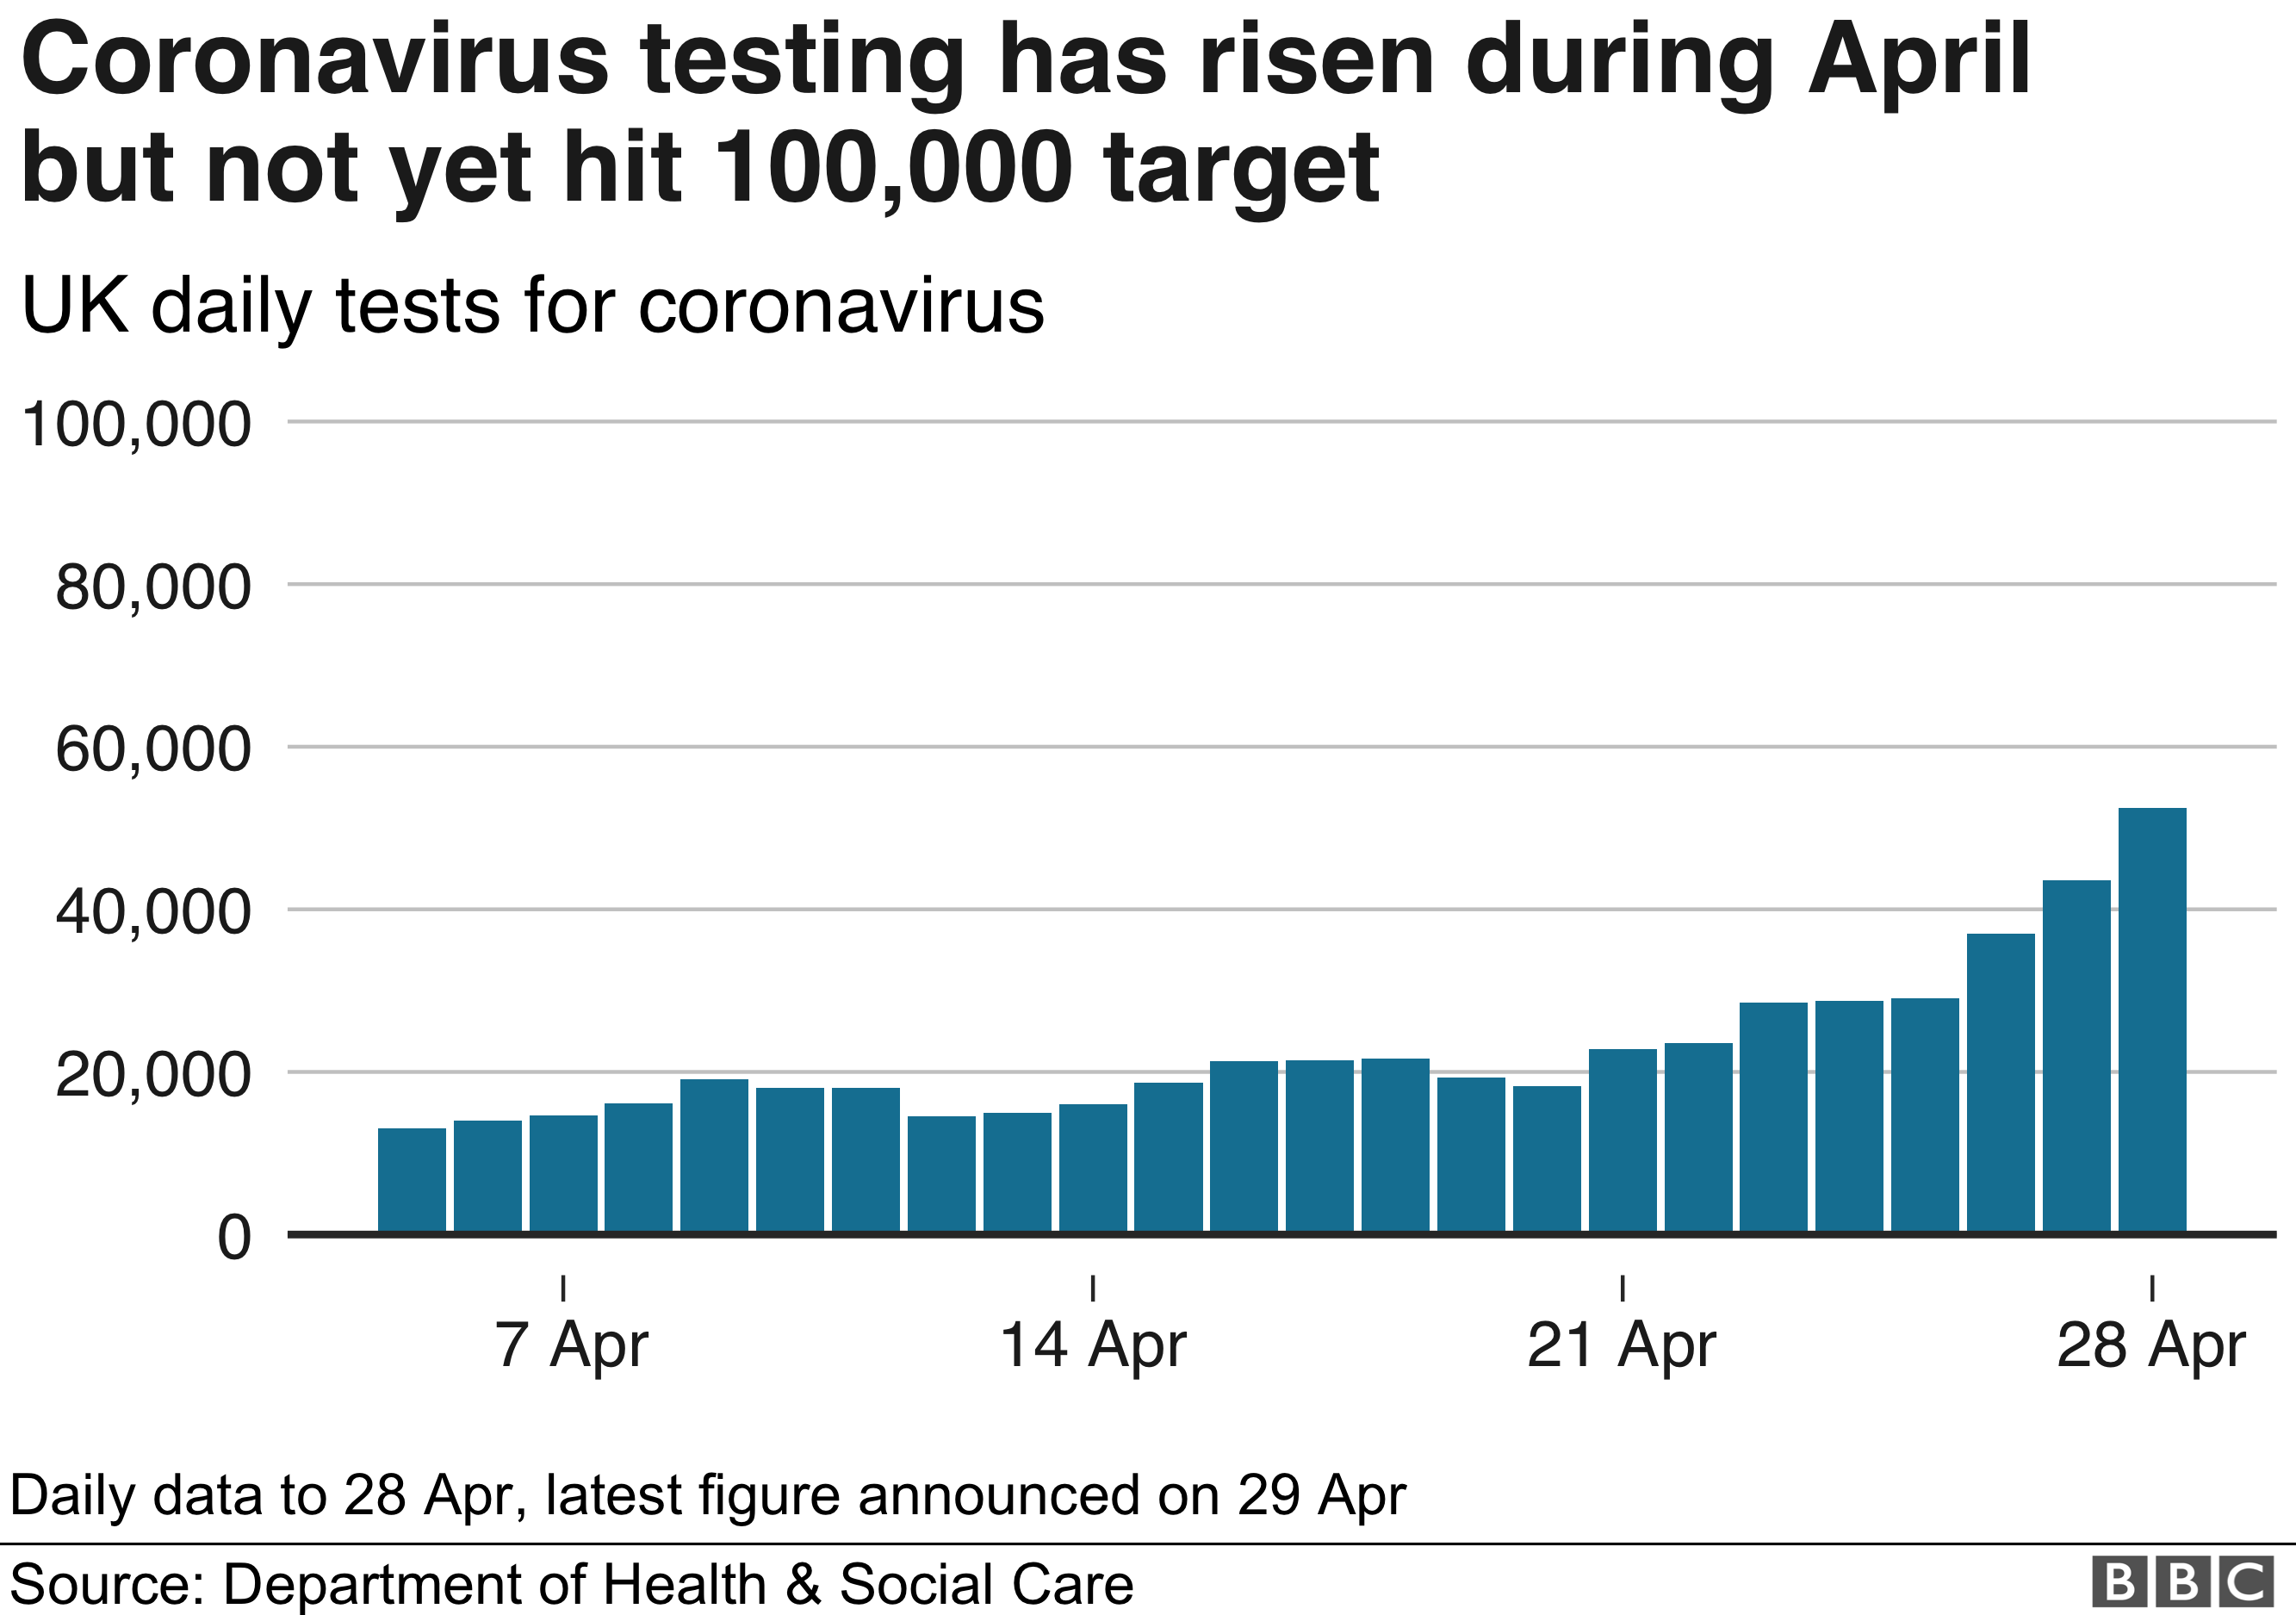 Graph showing UK's test numbers per day